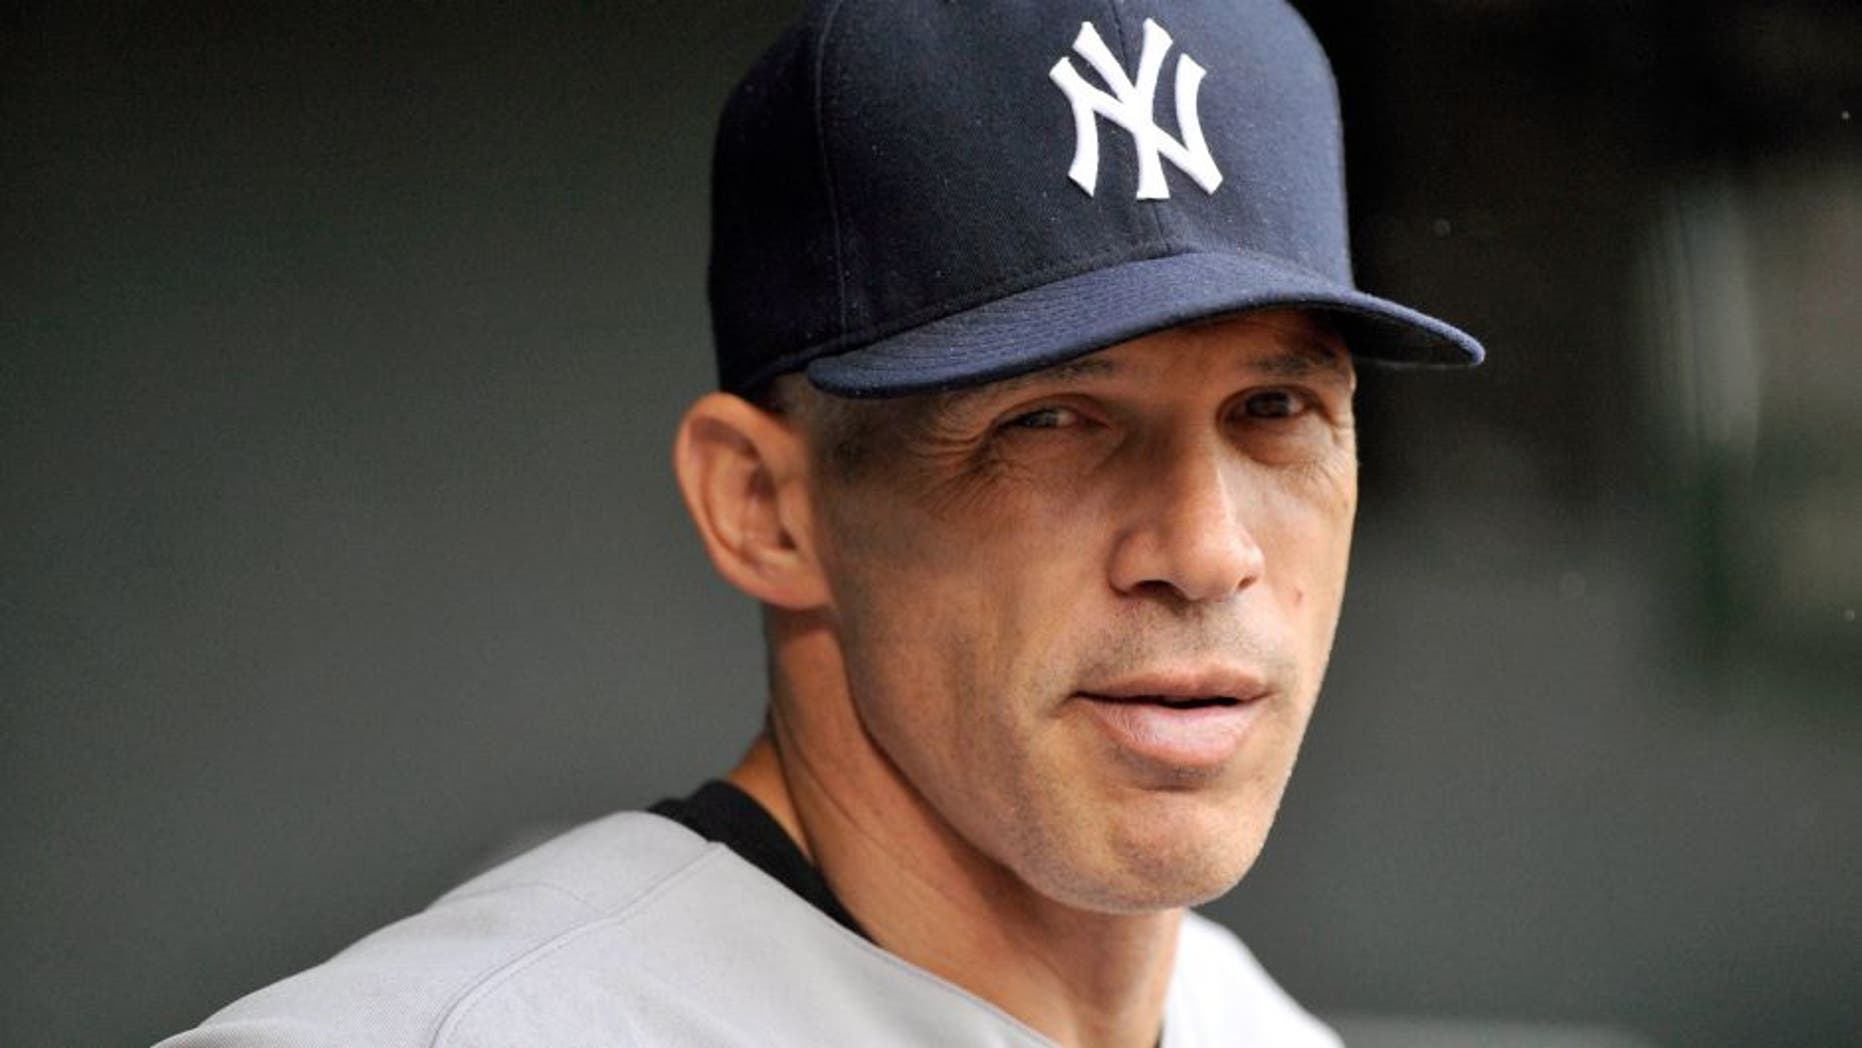 Sep 13, 2014; Baltimore, MD, USA; New York Yankees manager Joe Girardi (28) during a game against the Baltimore Orioles at Oriole Park at Camden Yards. Mandatory Credit: Joy R. Absalon-USA TODAY Sports